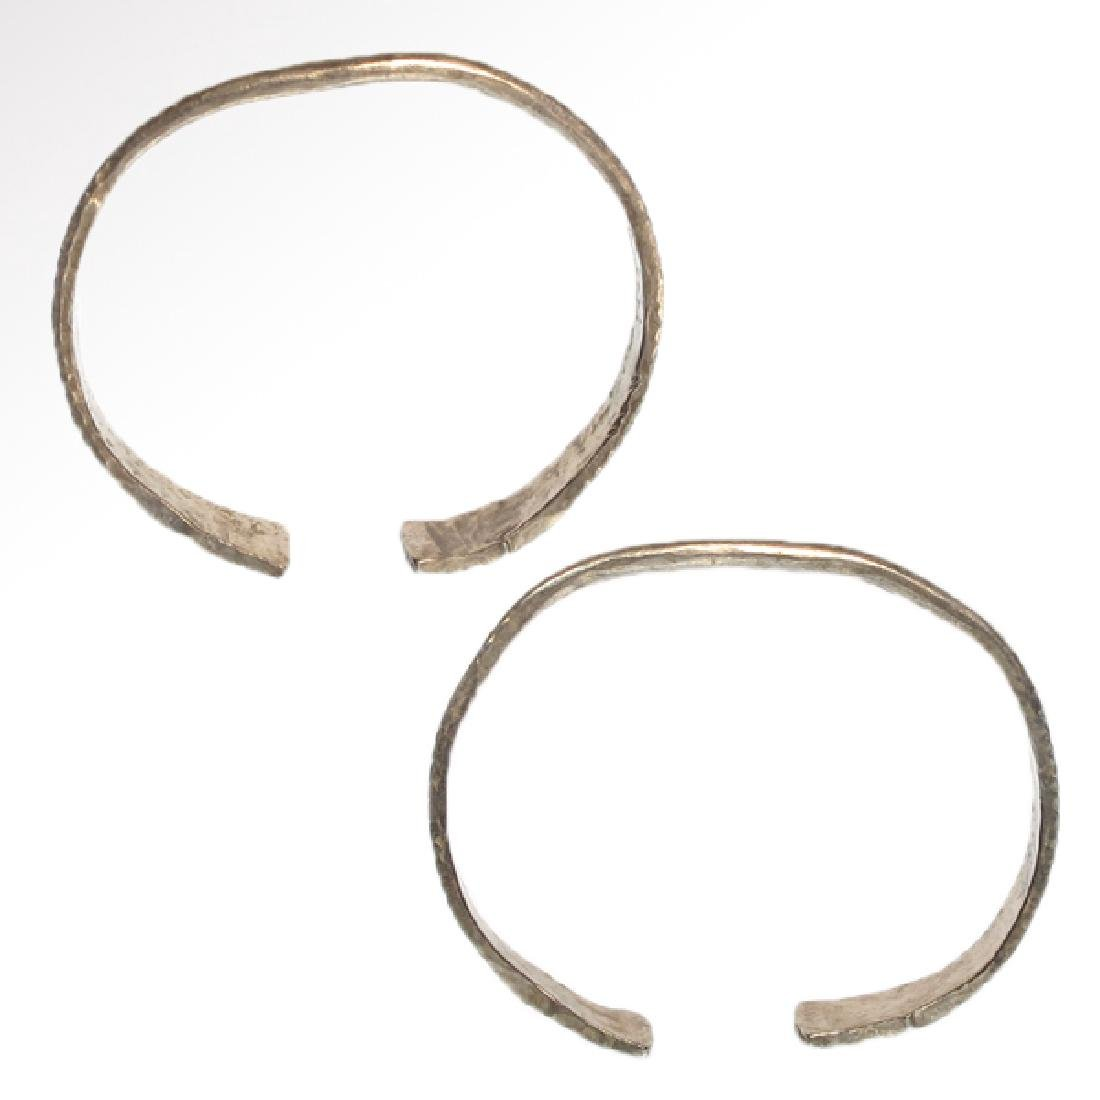 Pair of Celtic Silver Bracelets, Iron Age - 7